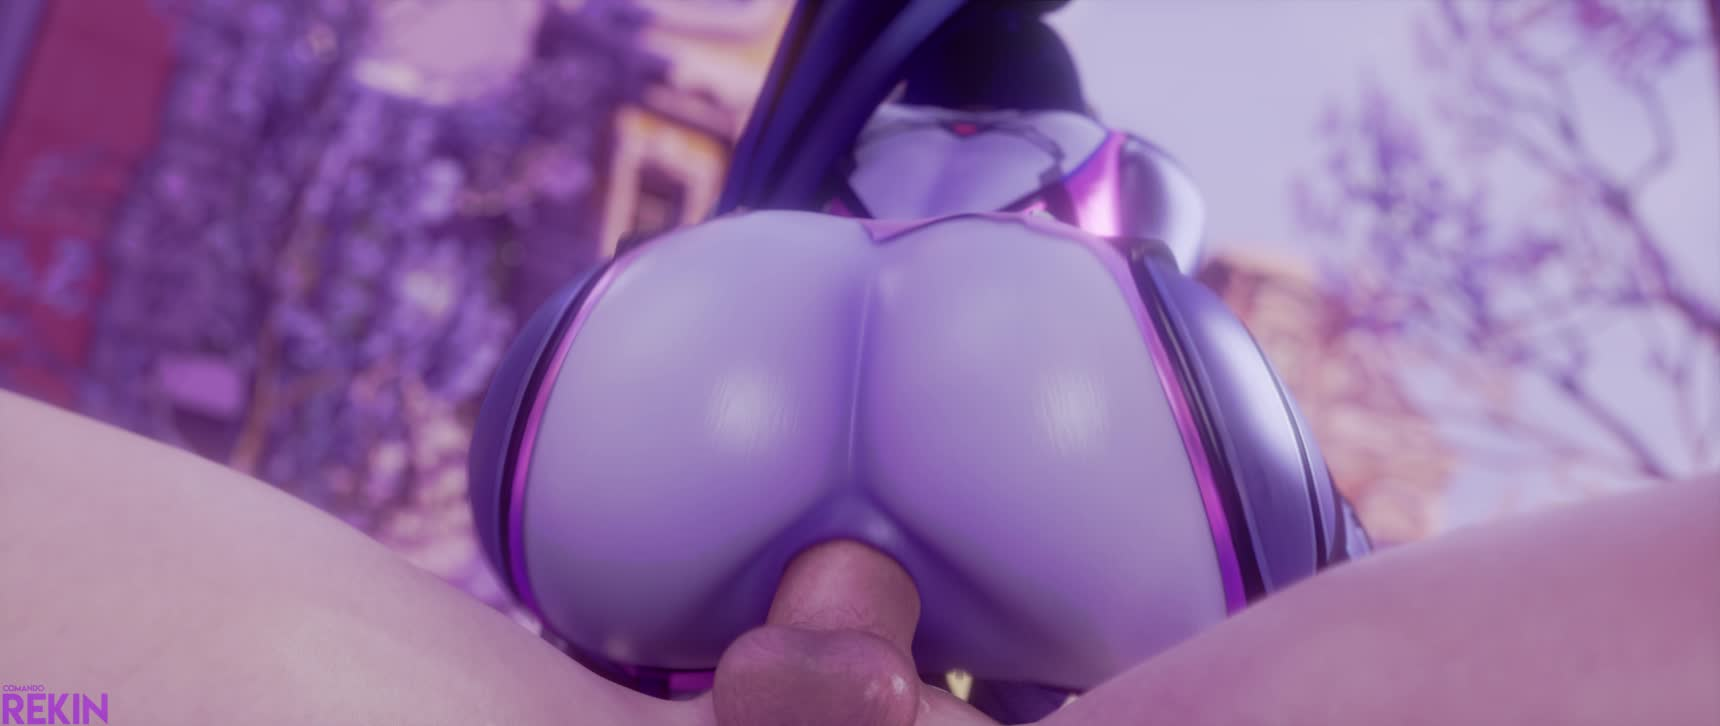 hintia-animated-anal-plum